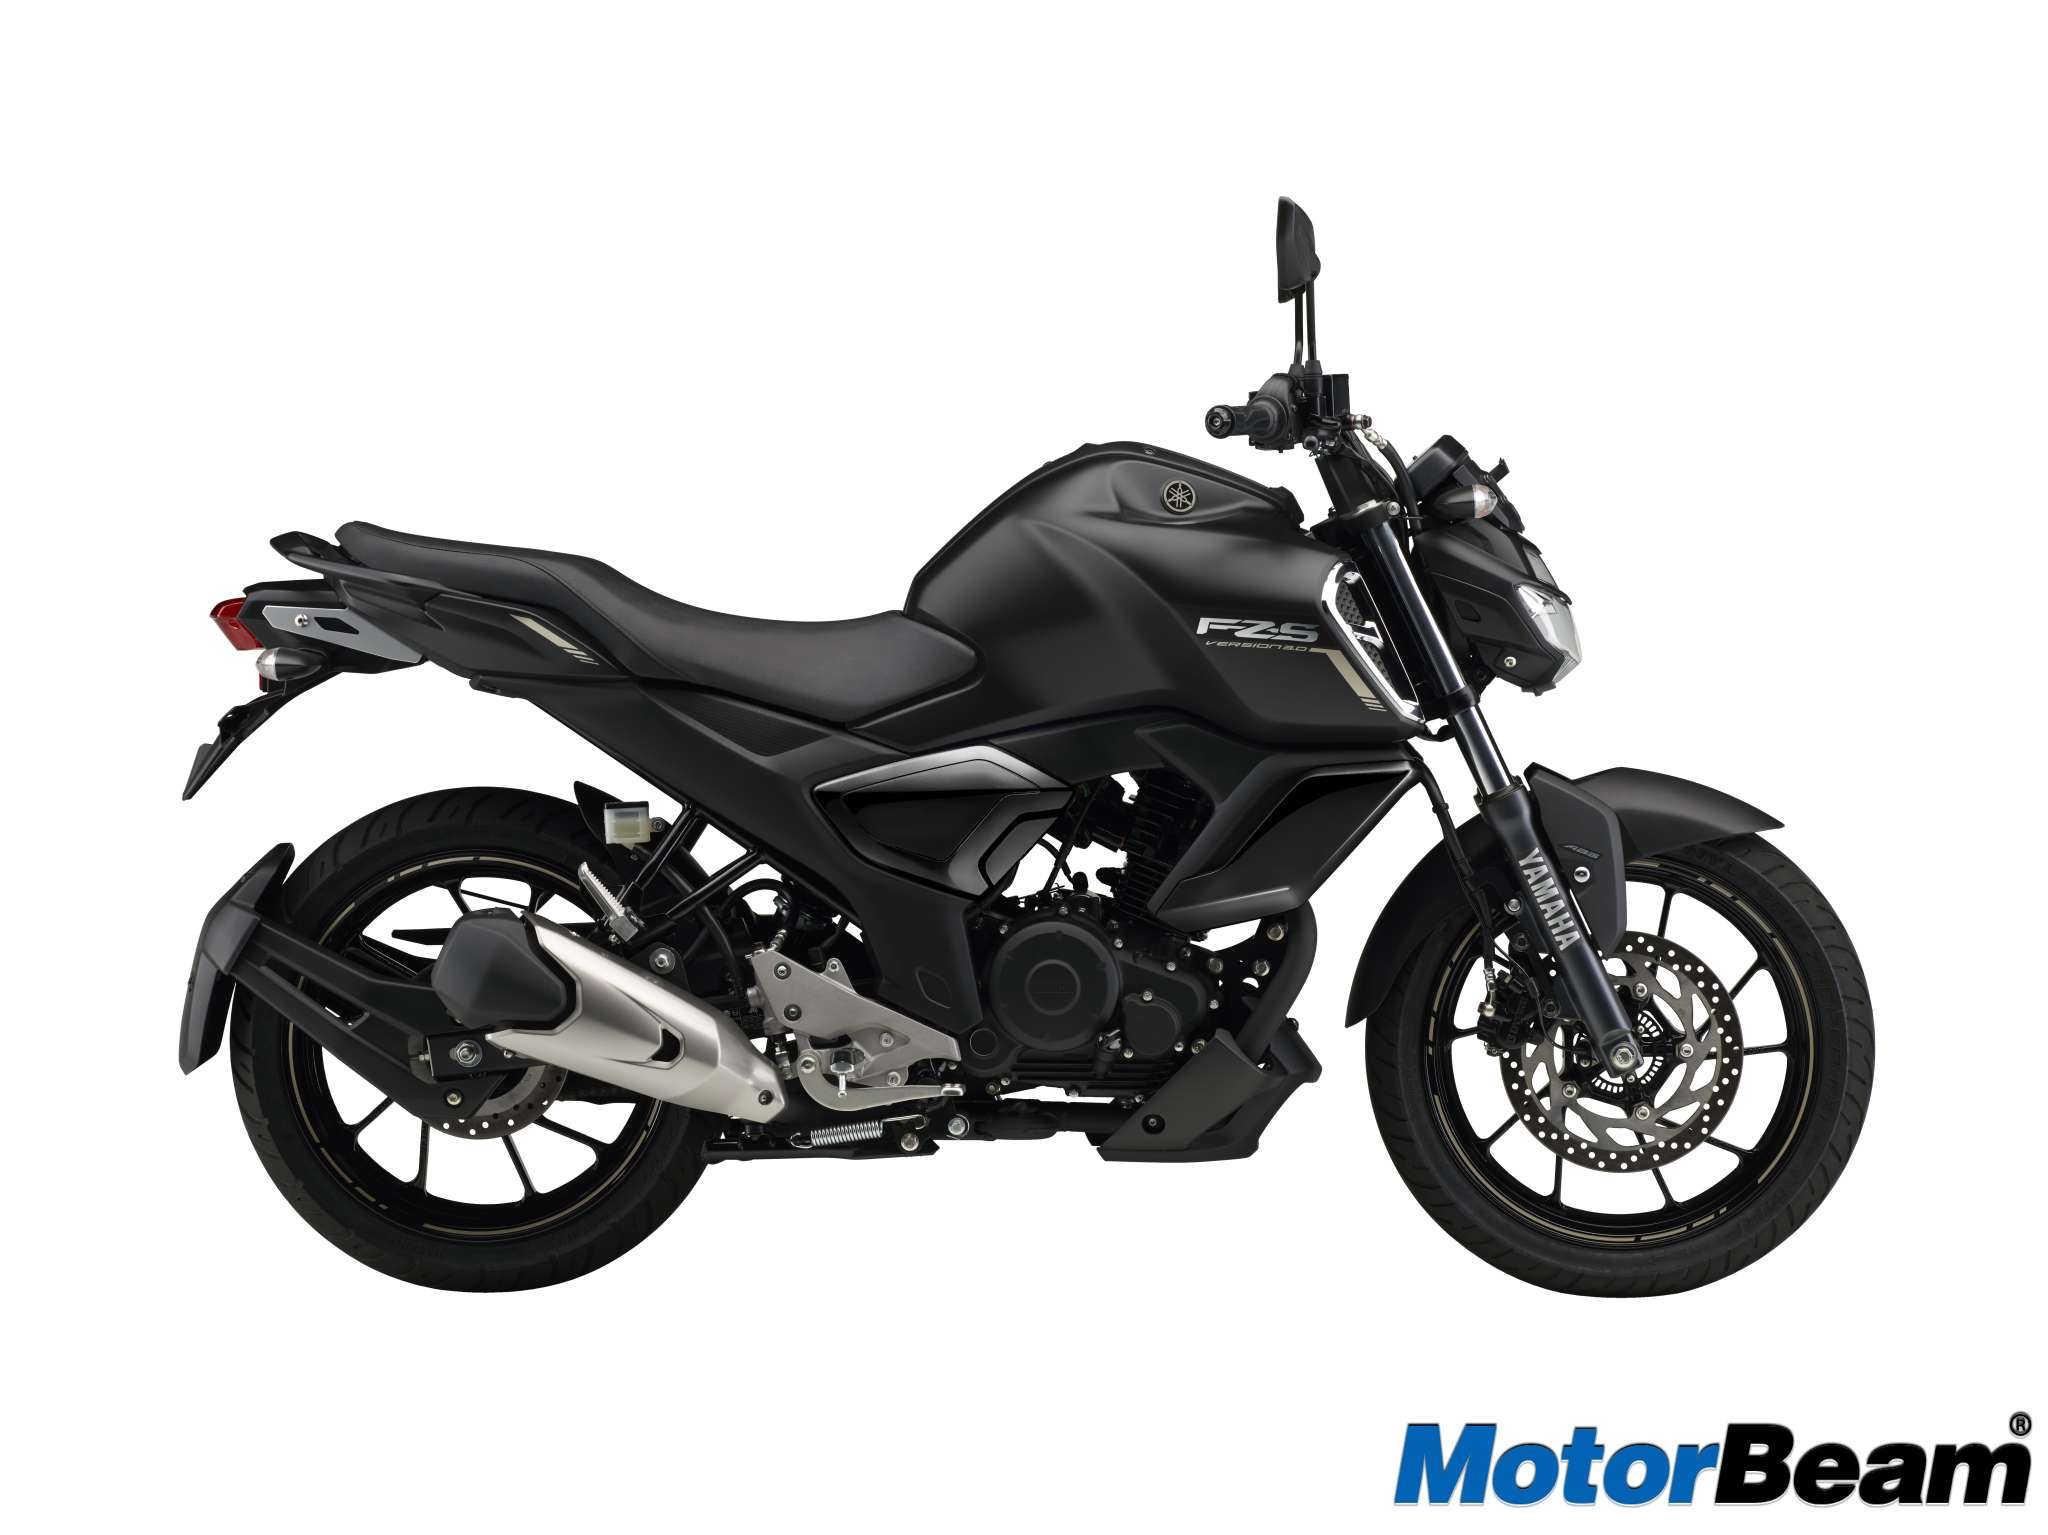 Yamaha FZ-S V3.0 Warna Matt Black